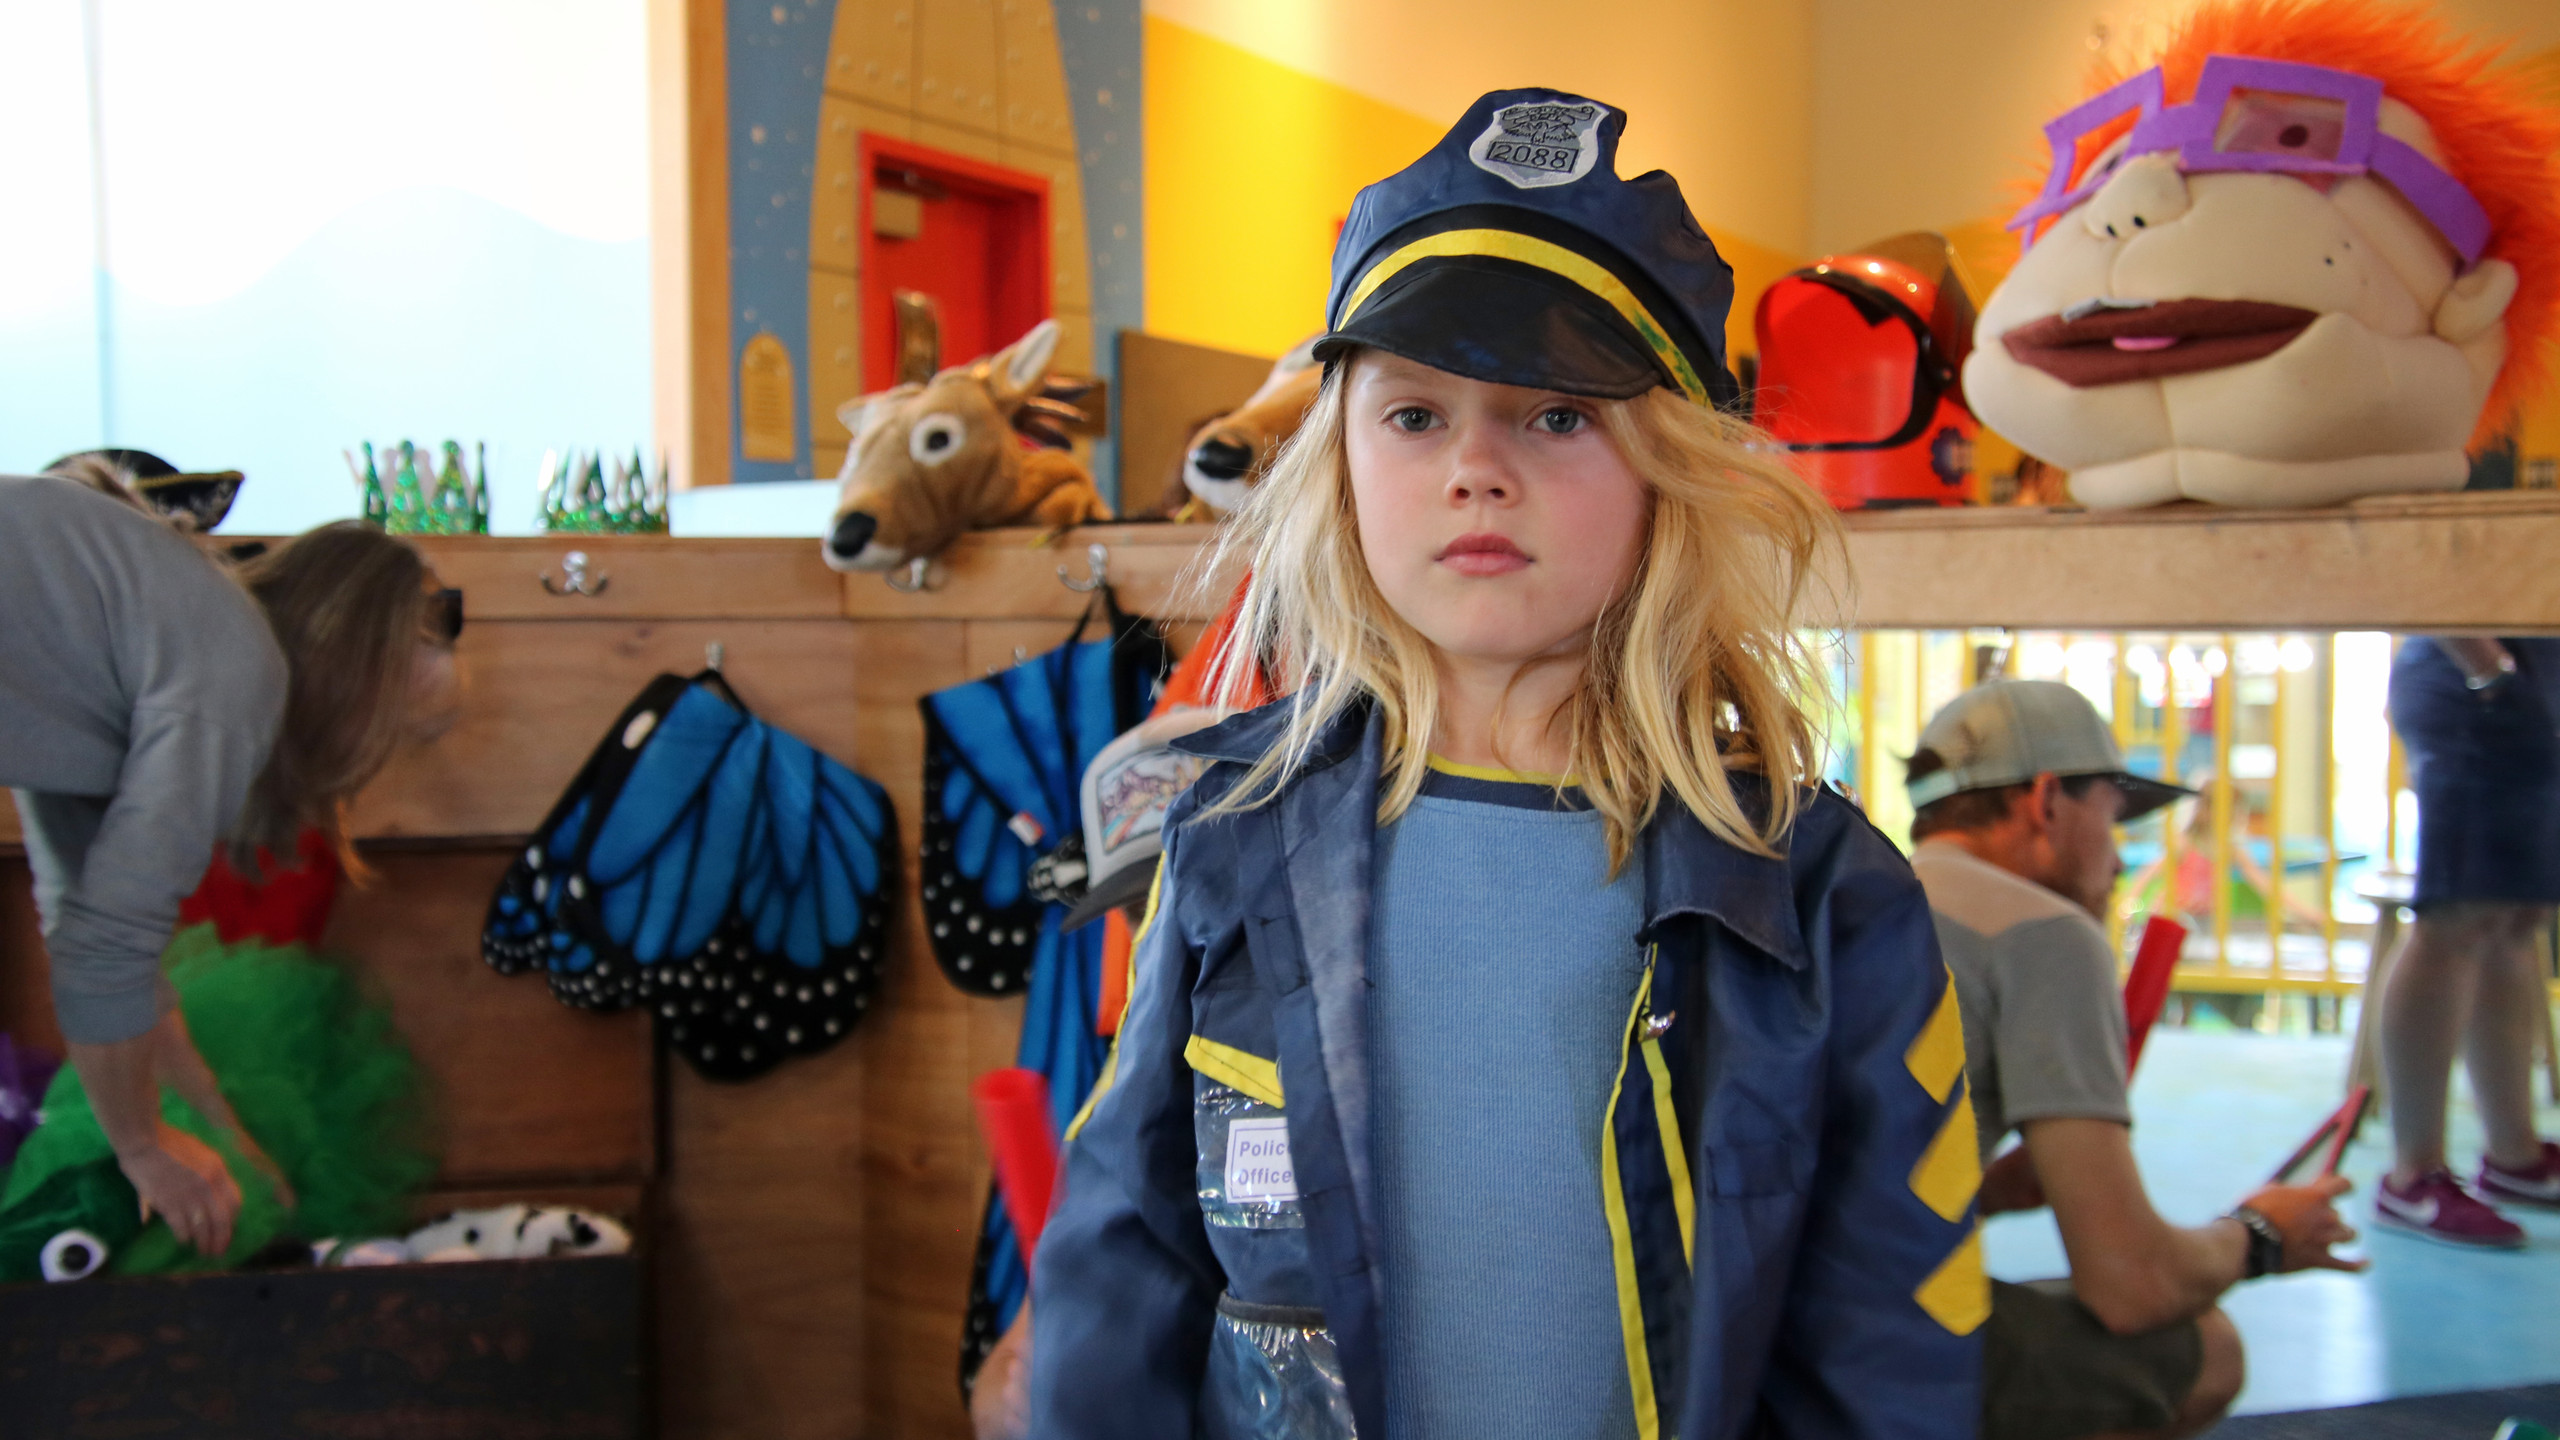 Blonde boy in a blue police uniform costume in the dress up area of the Santa Fe Children's Museum